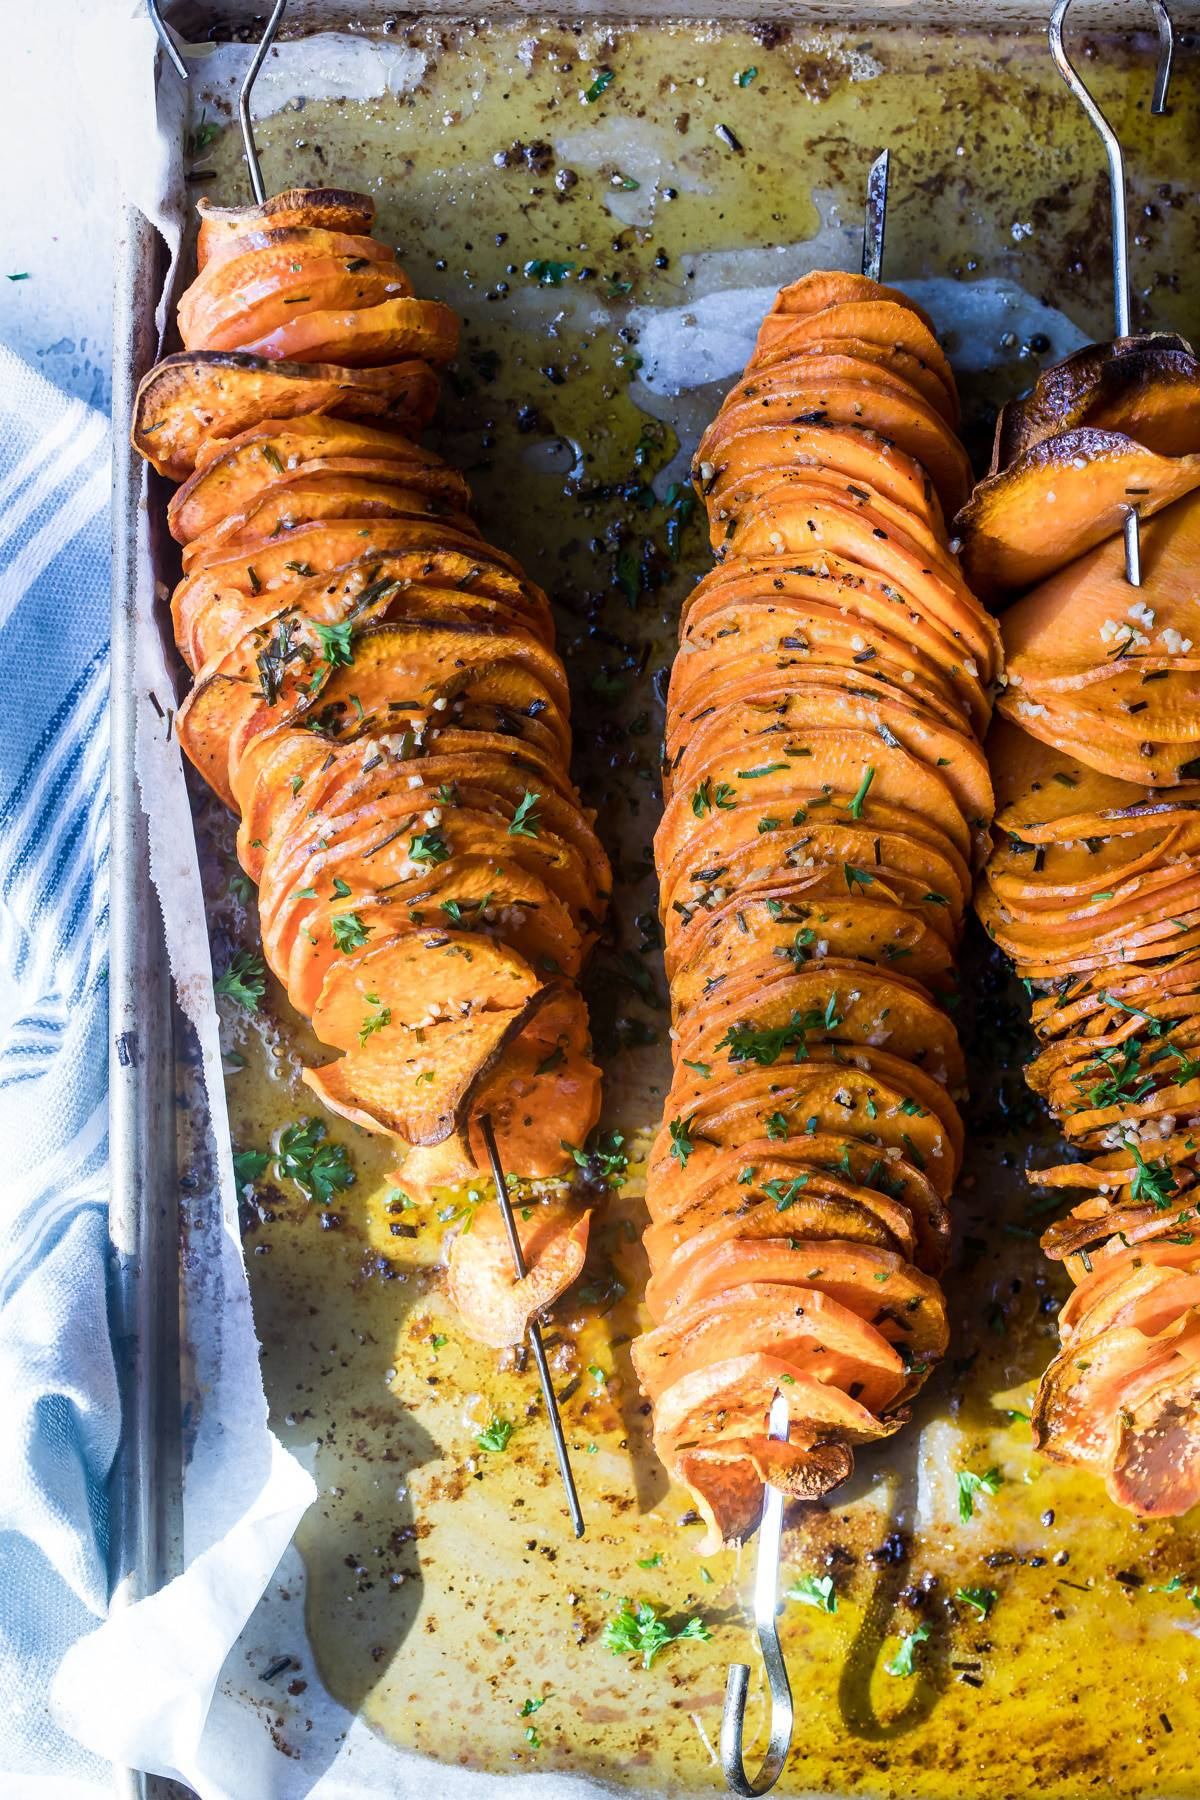 roasted sweet potatoes on skewers